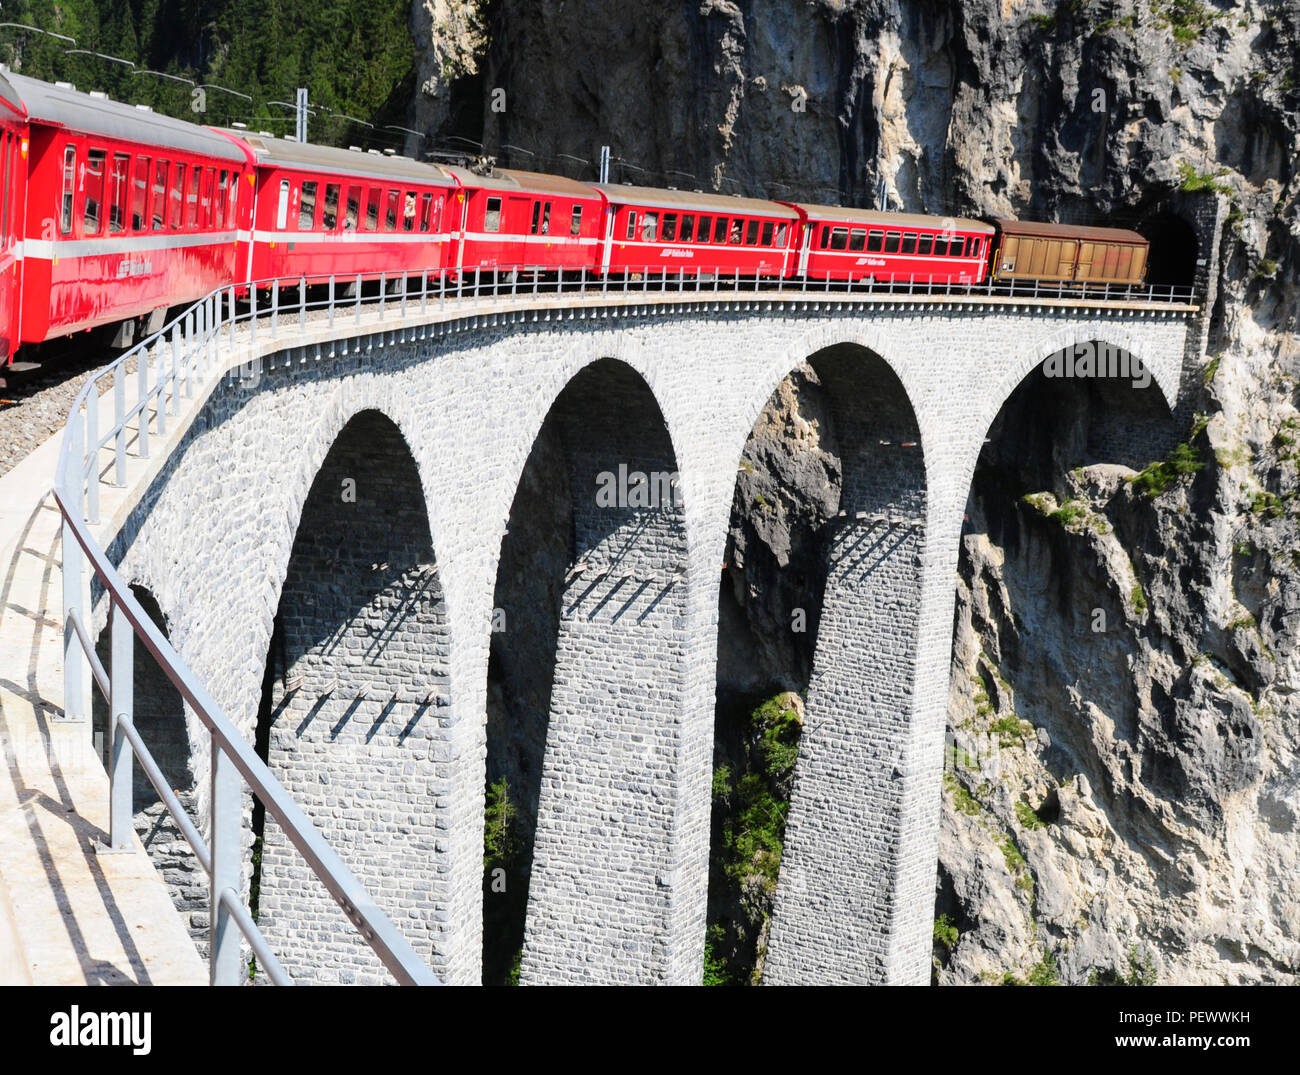 The Landwasser-Viaduct is part of the Unesco World Heritage Train Trip through the swiss alps in canton Graubünden - Stock Image